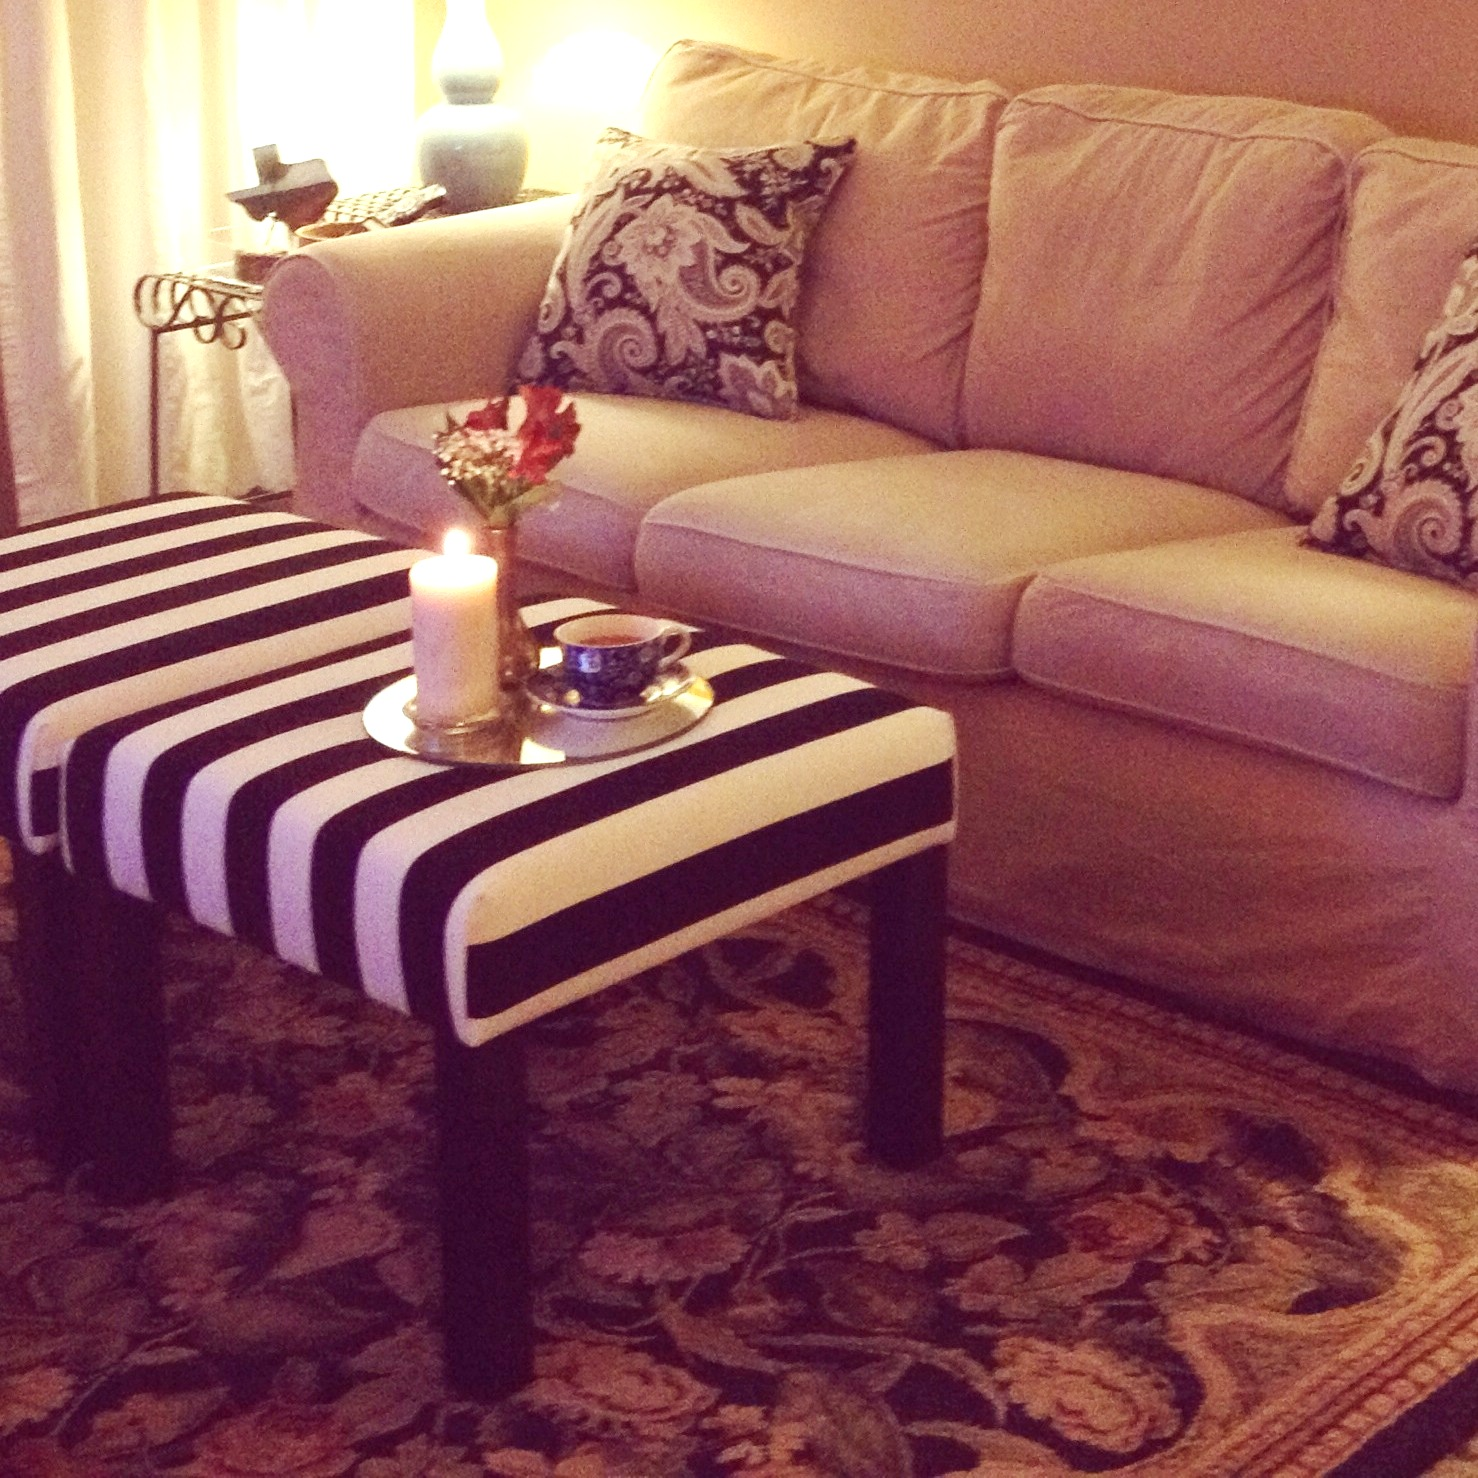 9 Ideas of Ottoman Coffee Table Tray